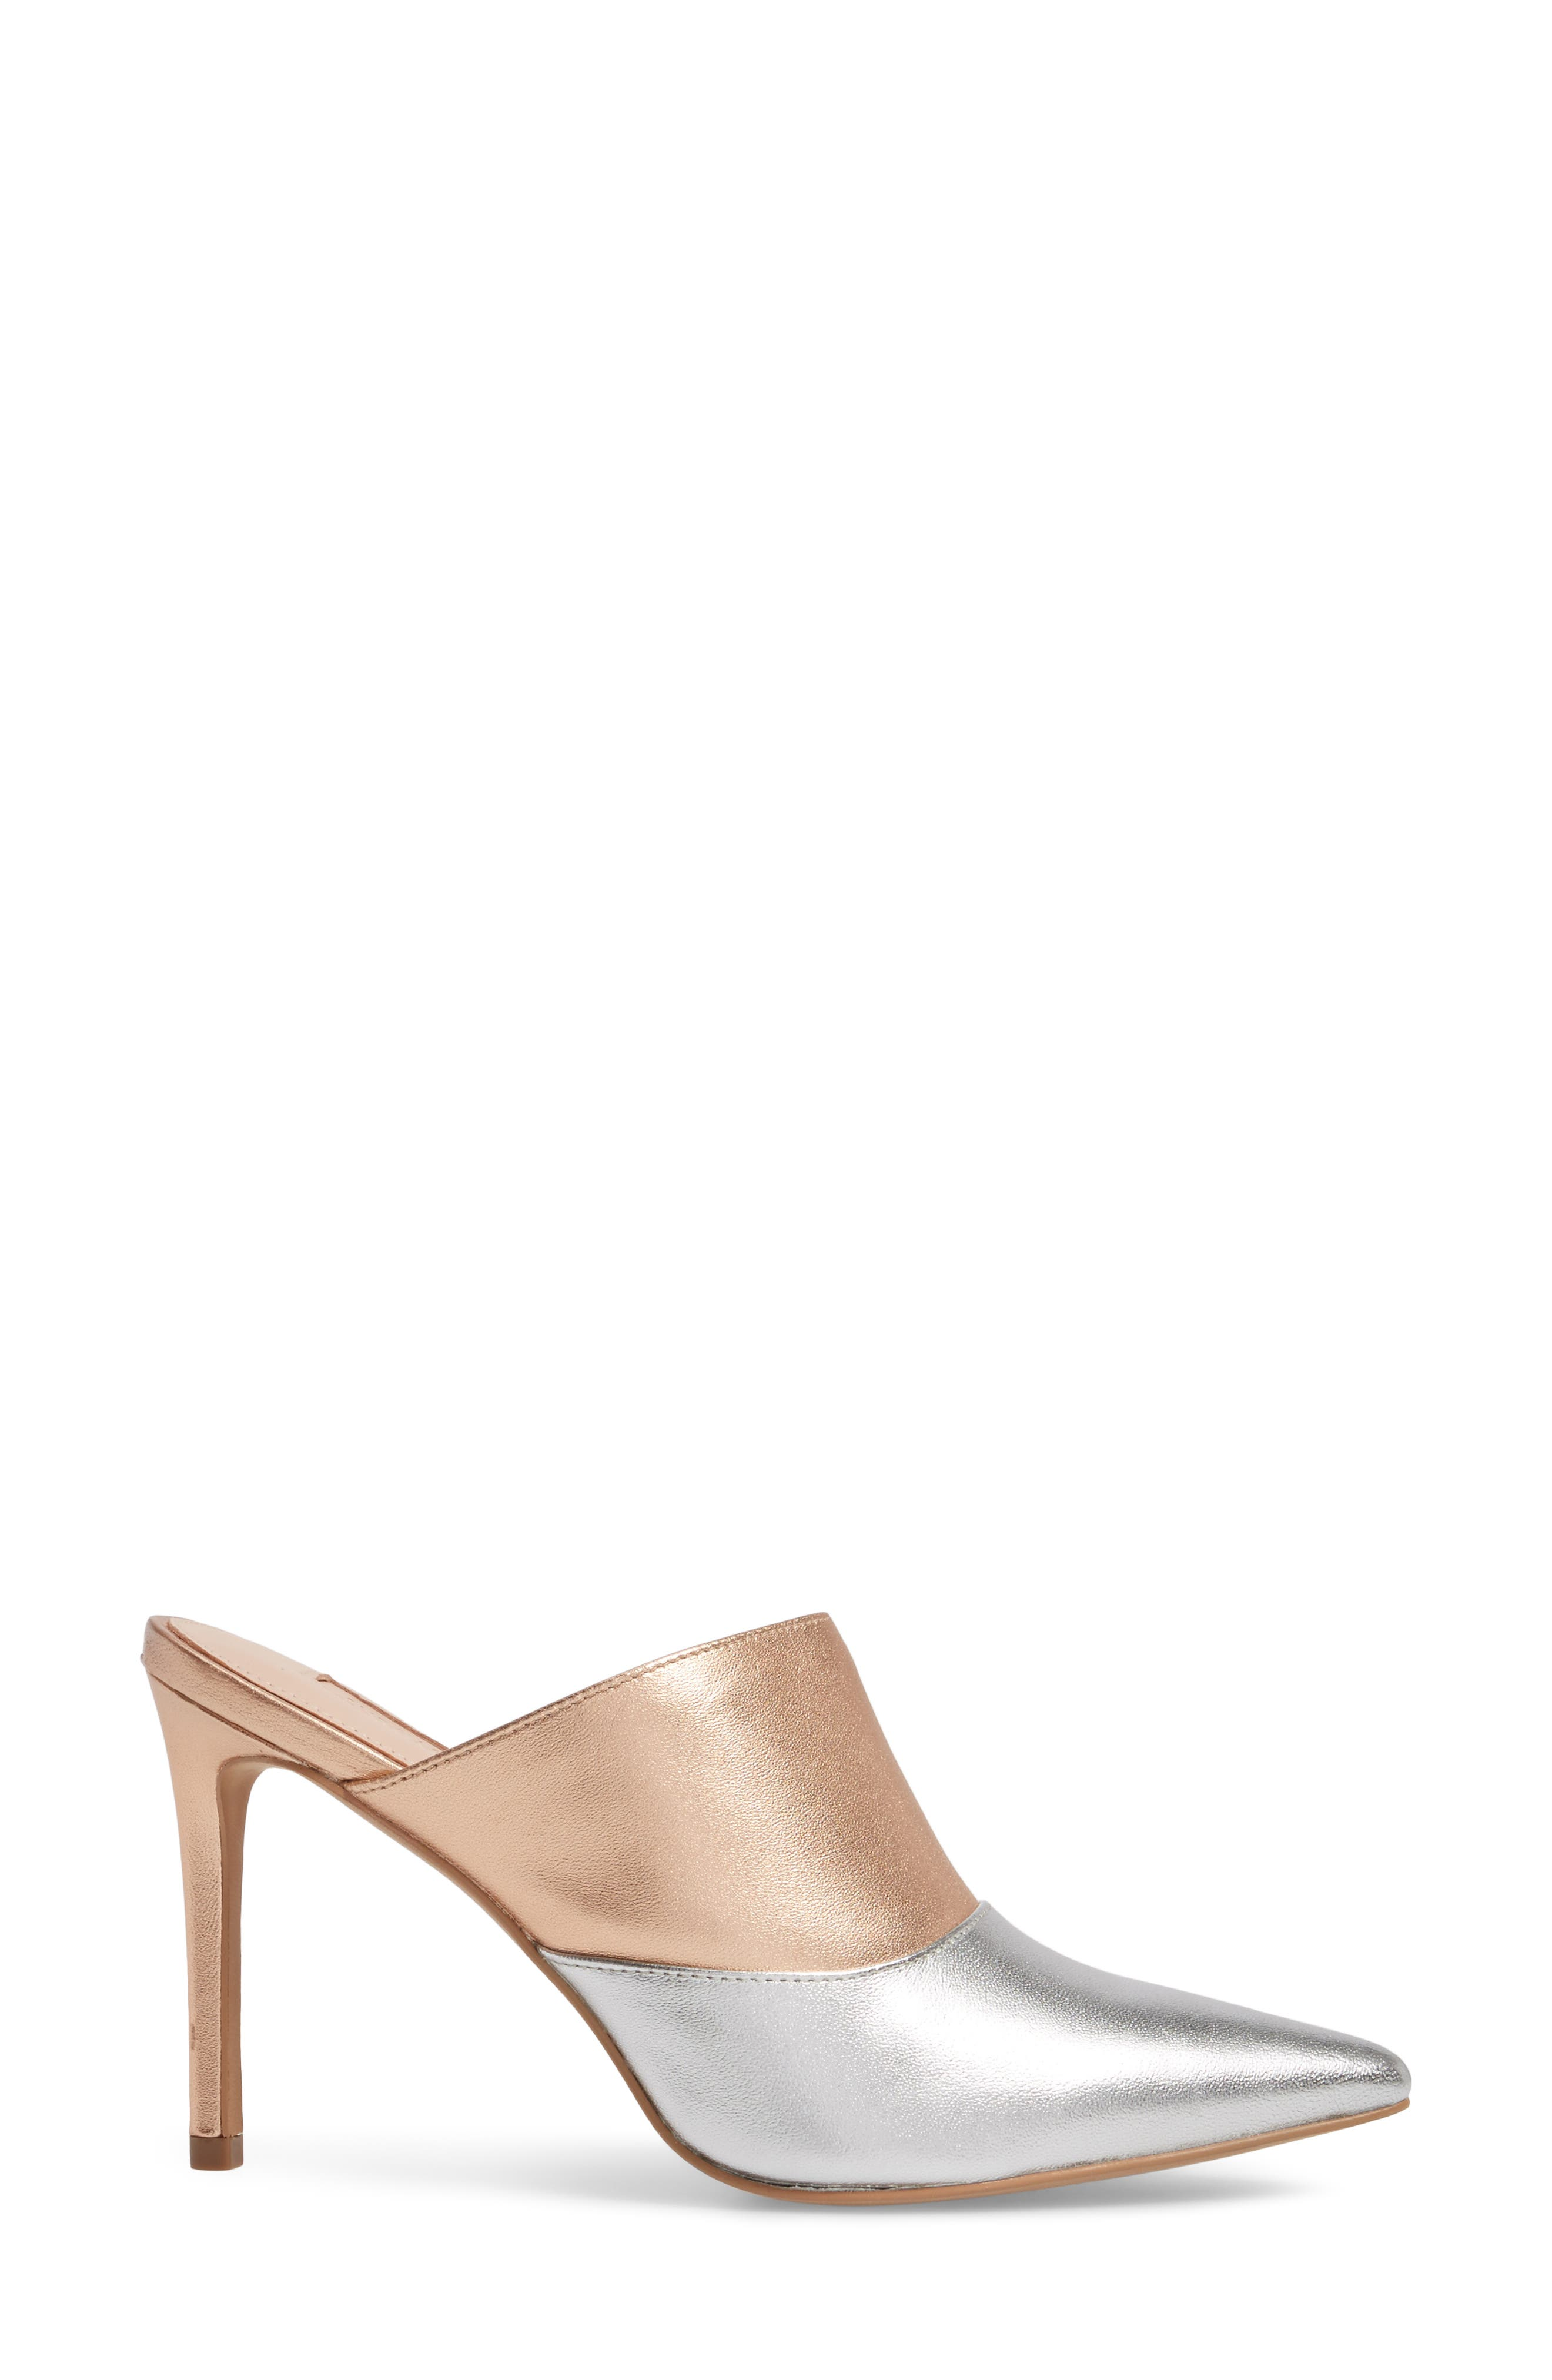 Joelle High Heel Mule,                             Alternate thumbnail 3, color,                             Silver/ Rose Gold Leather